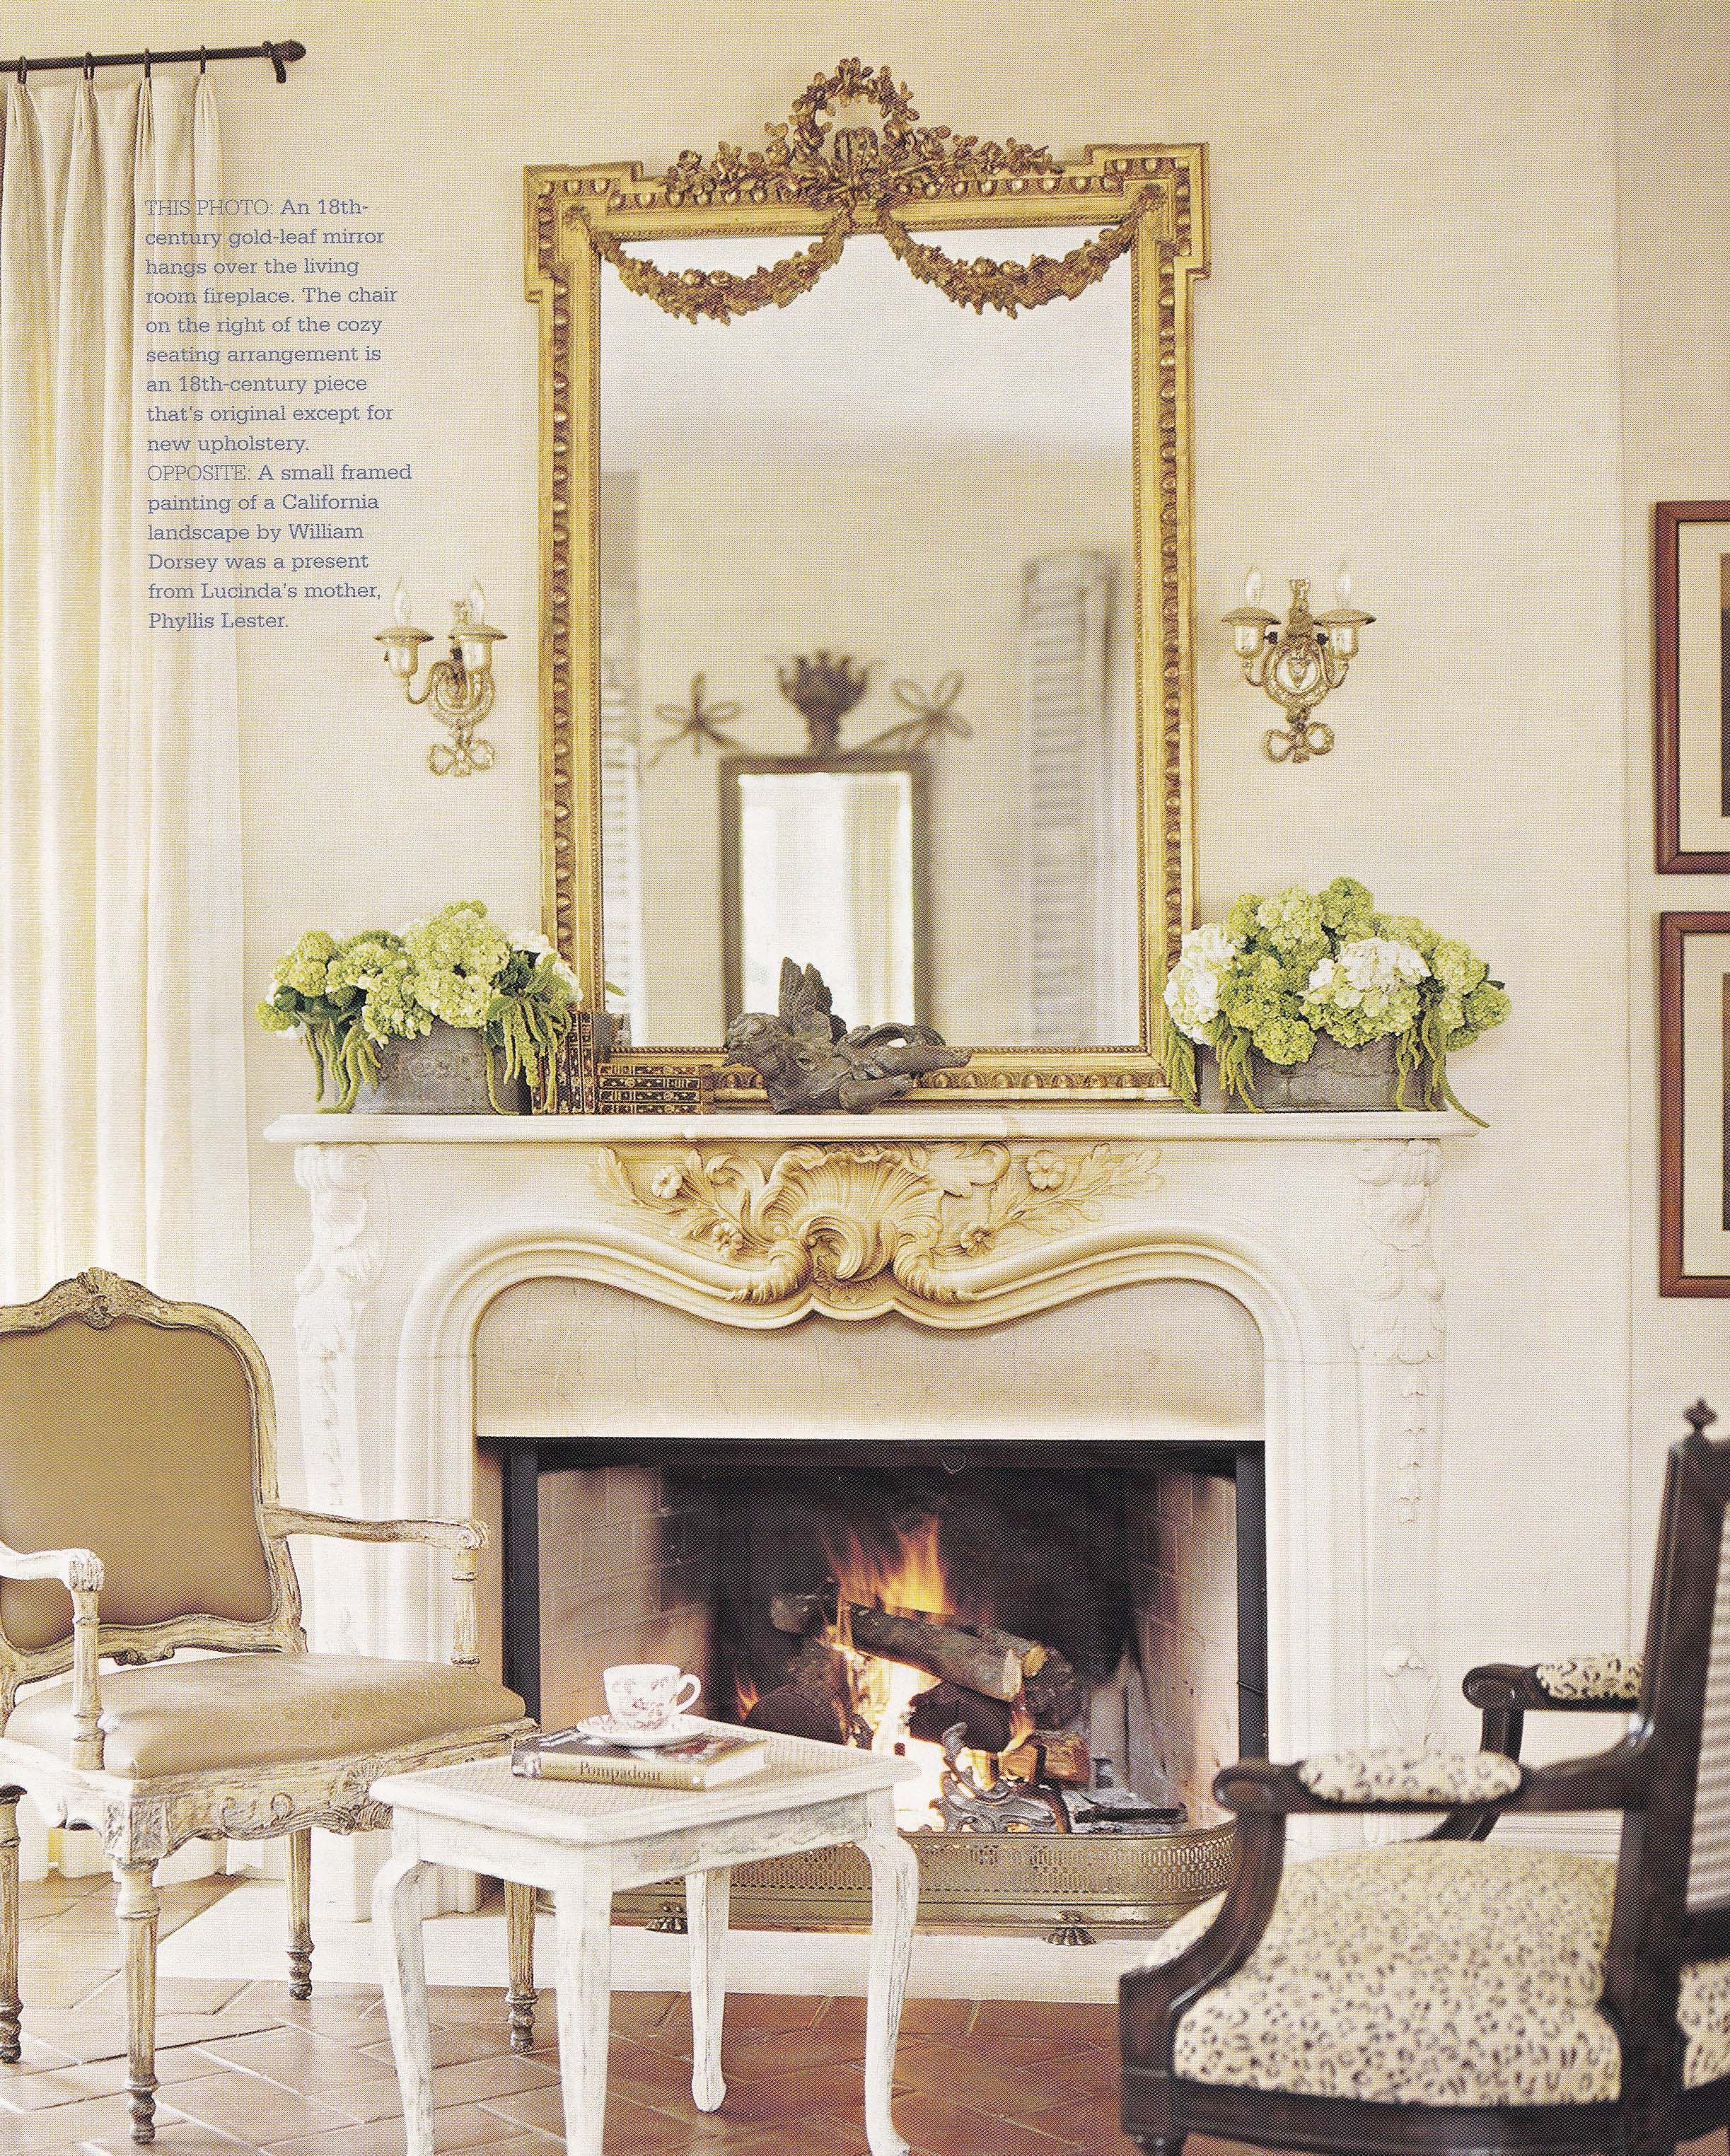 Interior Designer Lucinda Lester Better Homes And Gardens Country French Decorating Spring Summer 2006 New York Townhouse French Country Decorating Home Decor